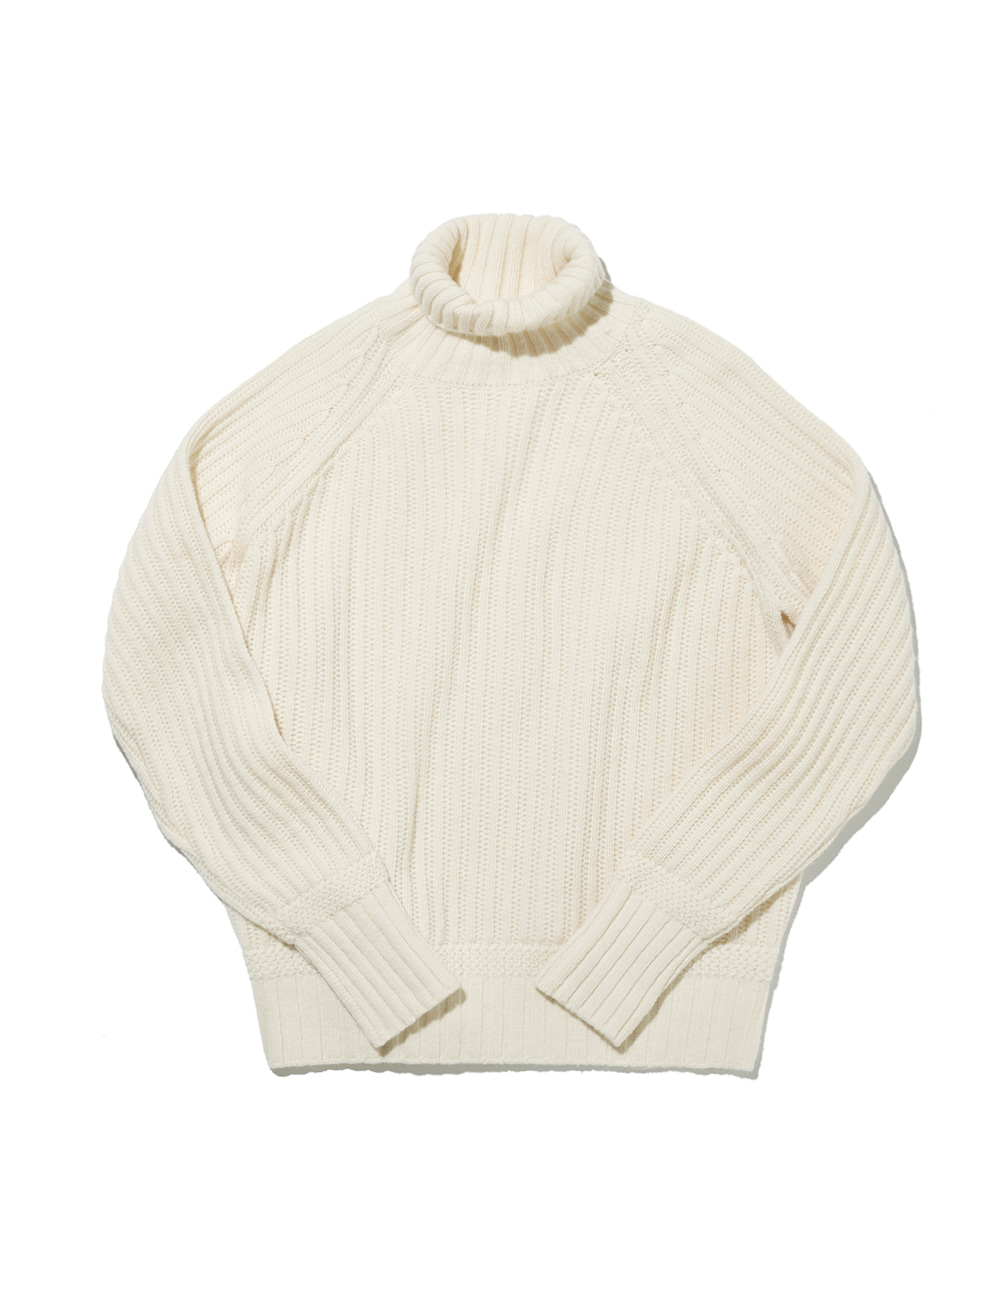 [ESFAI with AMFEAST] FISHERMAN Sweater (Ivory)